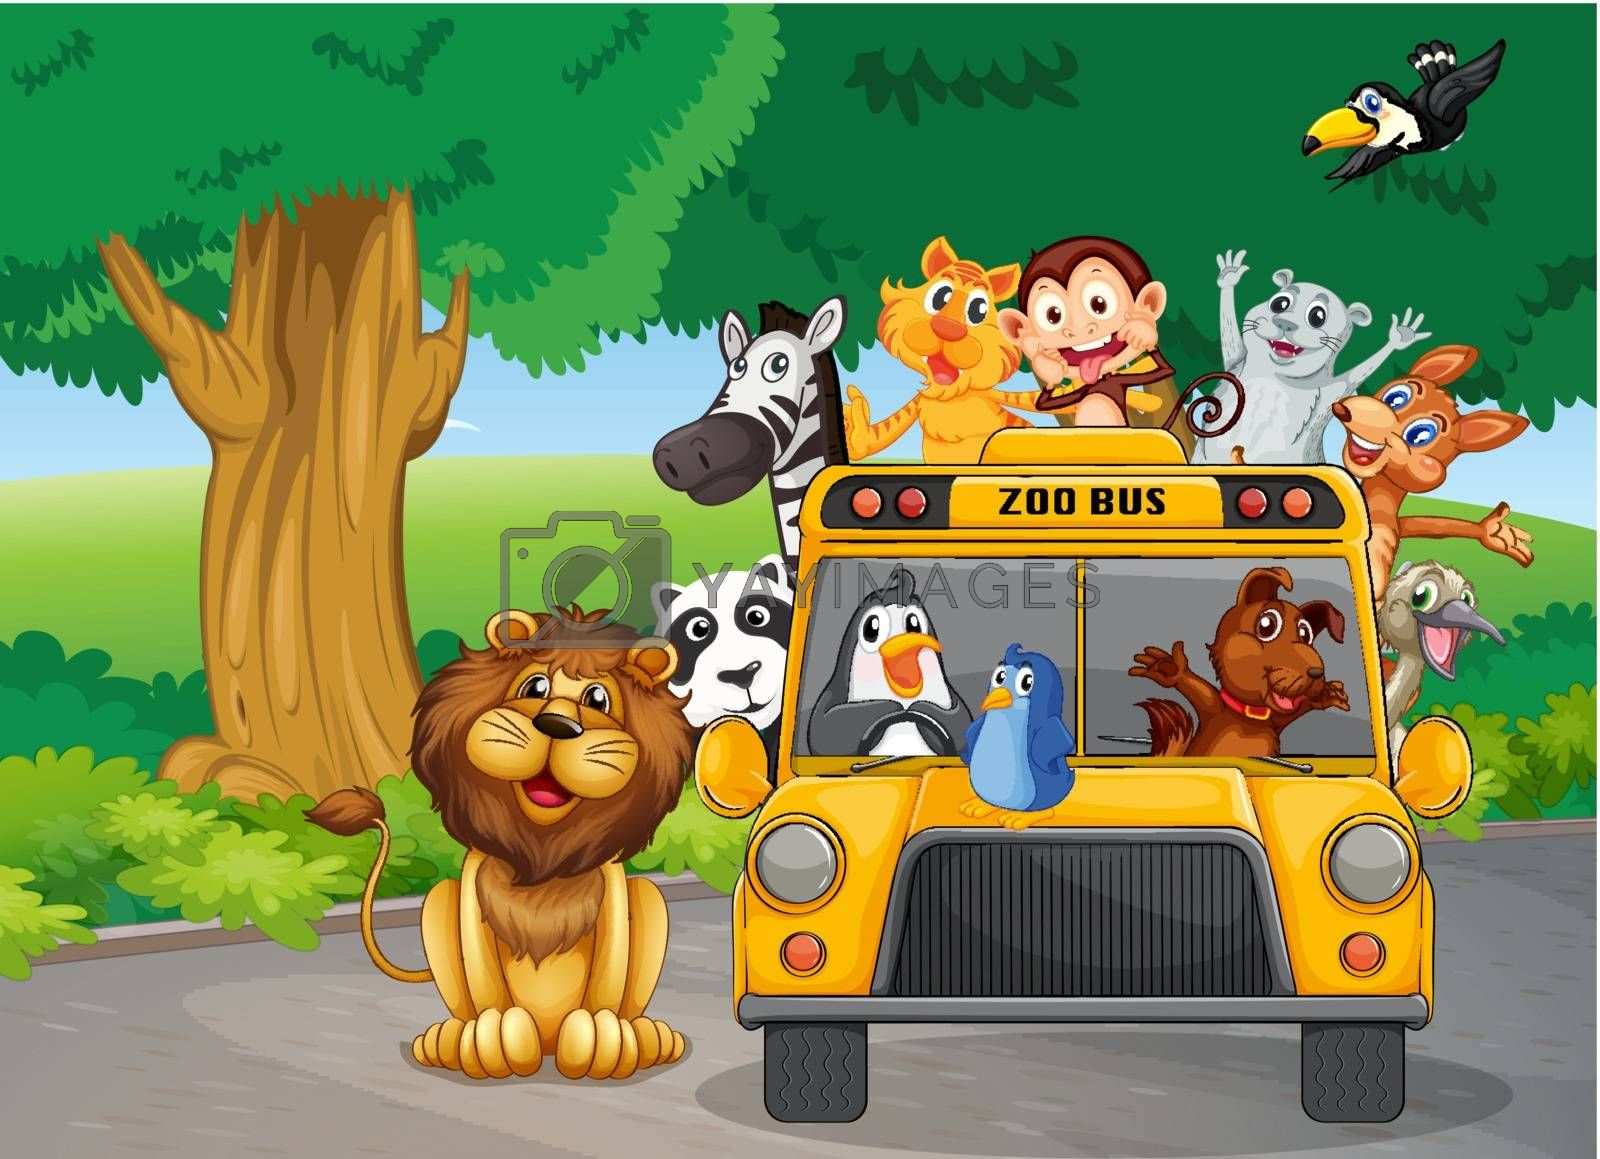 Illustration of a zoo bus full of animals